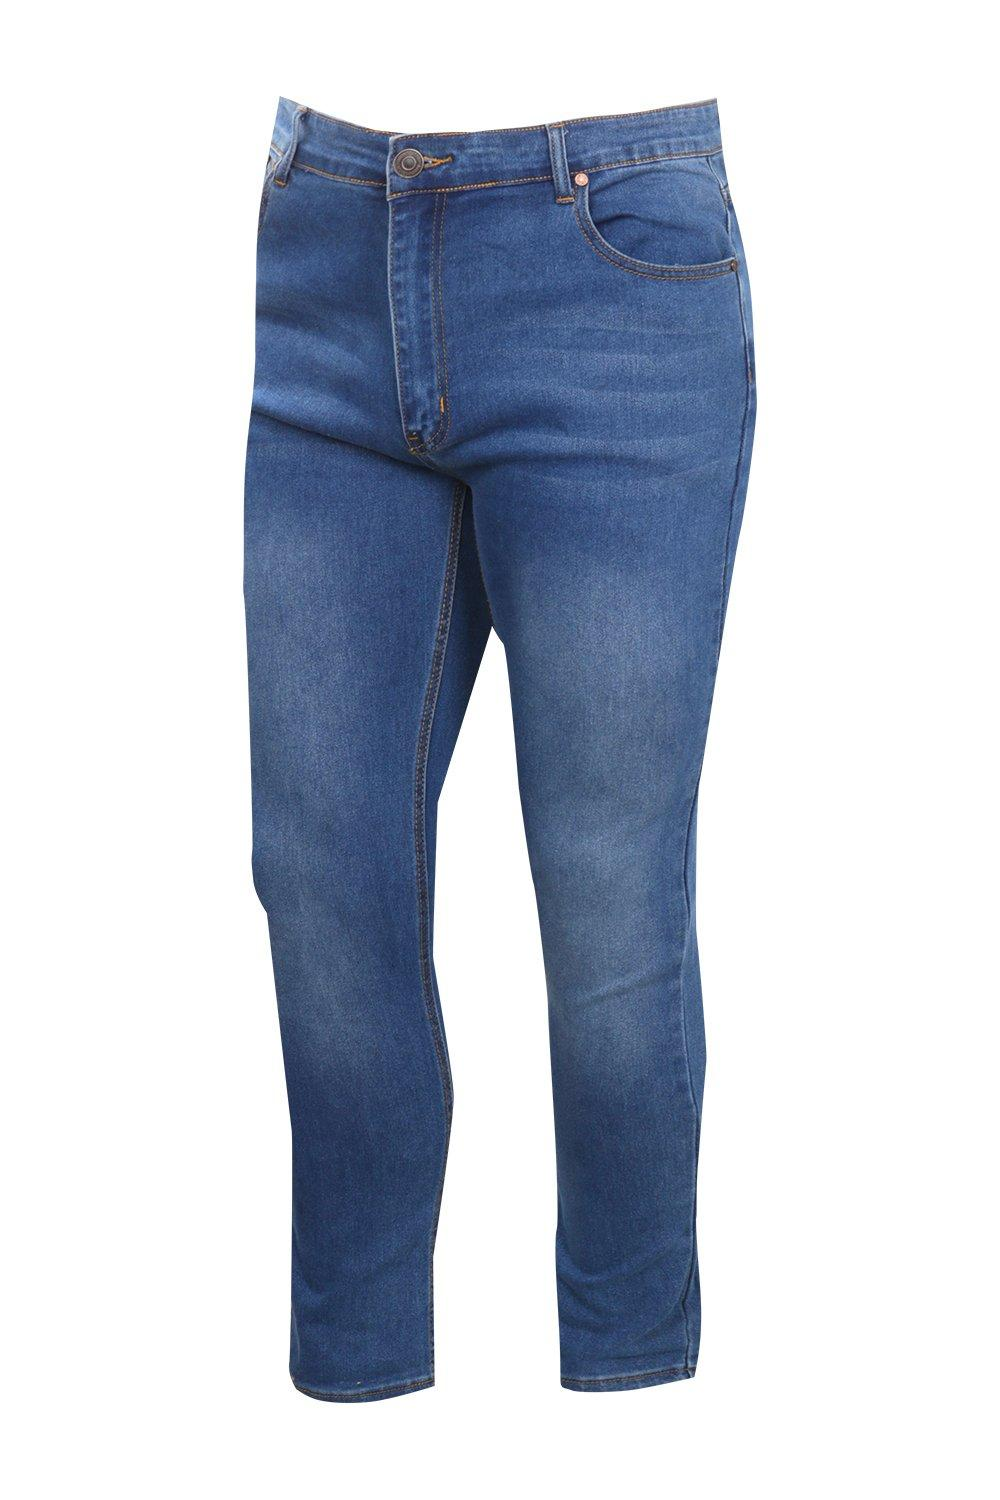 boohooMAN Big And Tall Blue Skinny Fit Washed Jeans